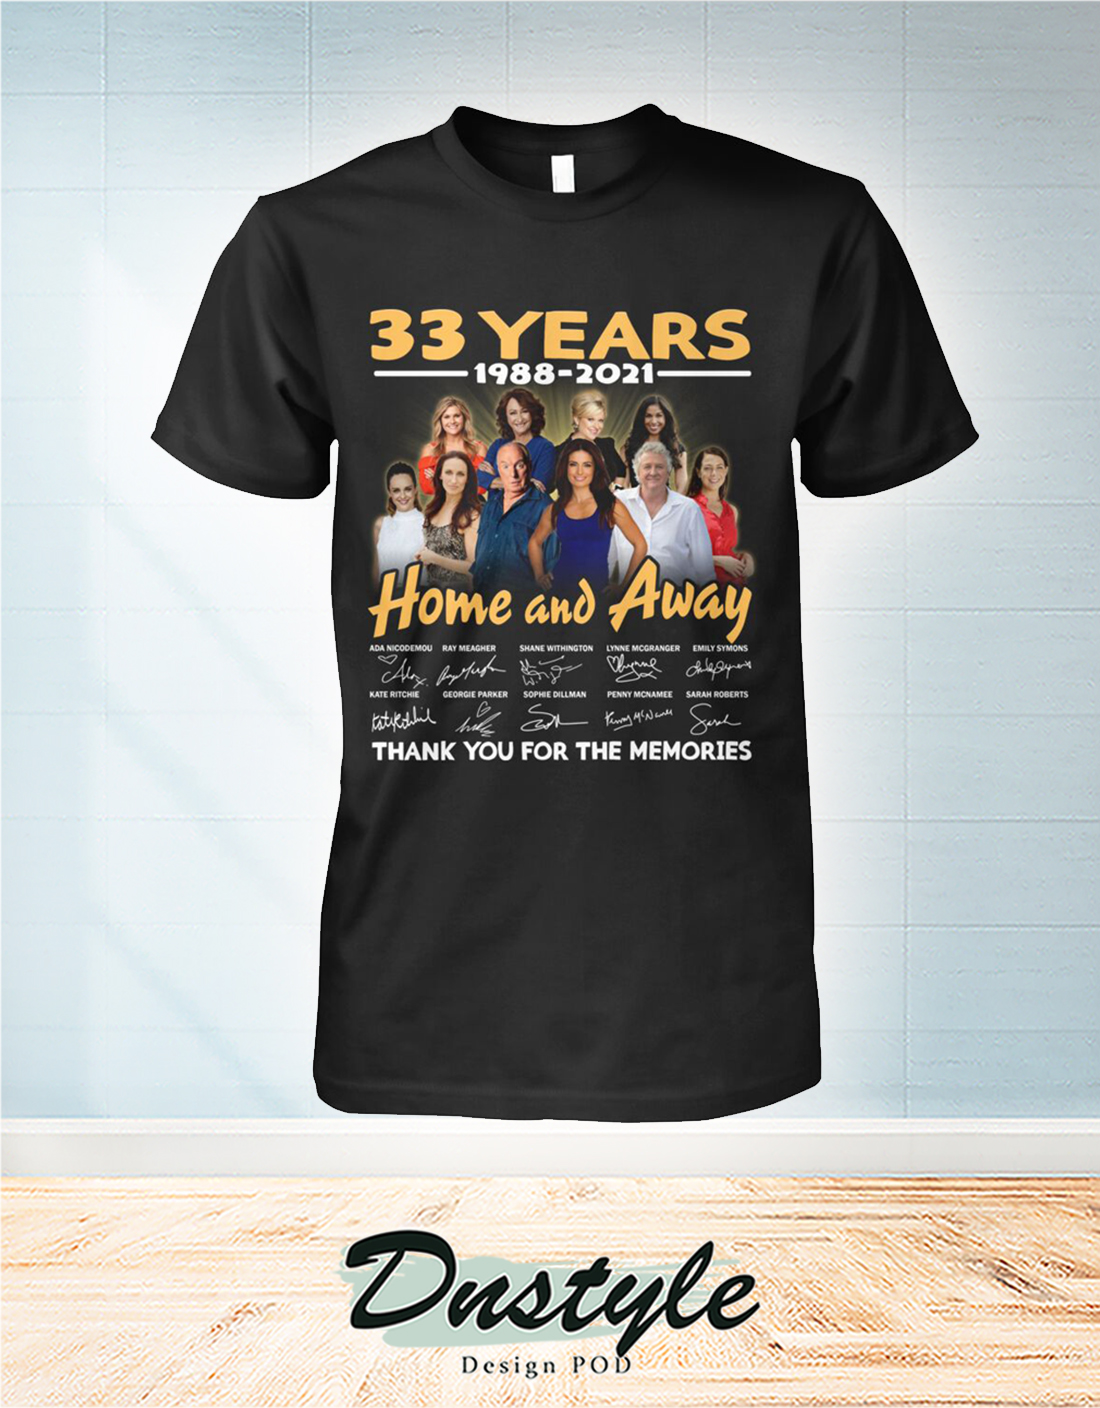 Home and away 33 years thank you for the memories shirt